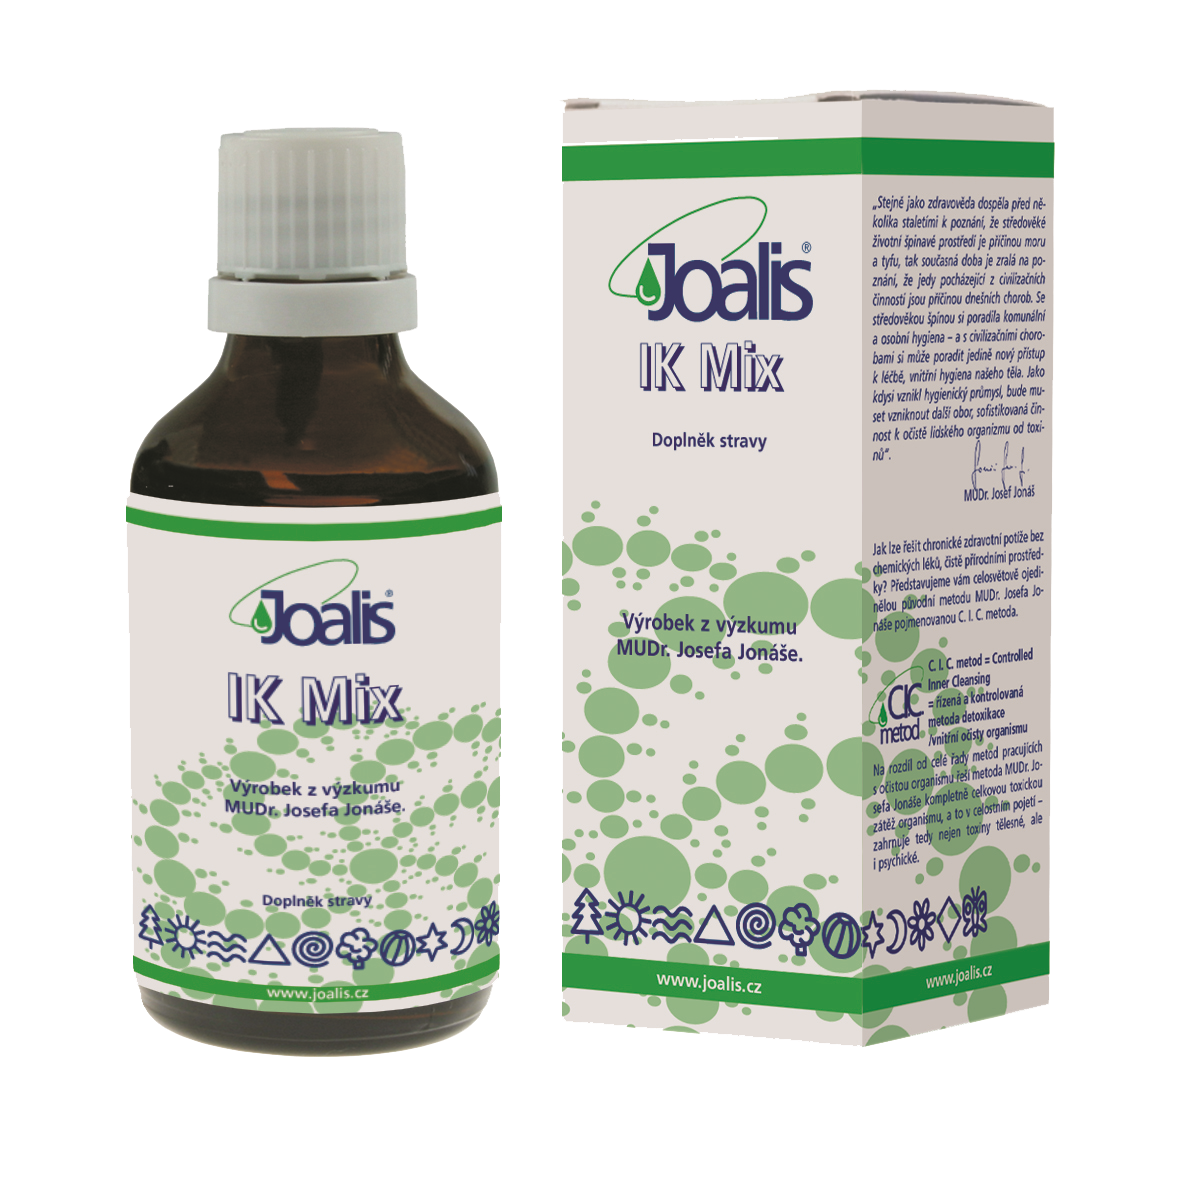 Joalis IK Mix, 50ml